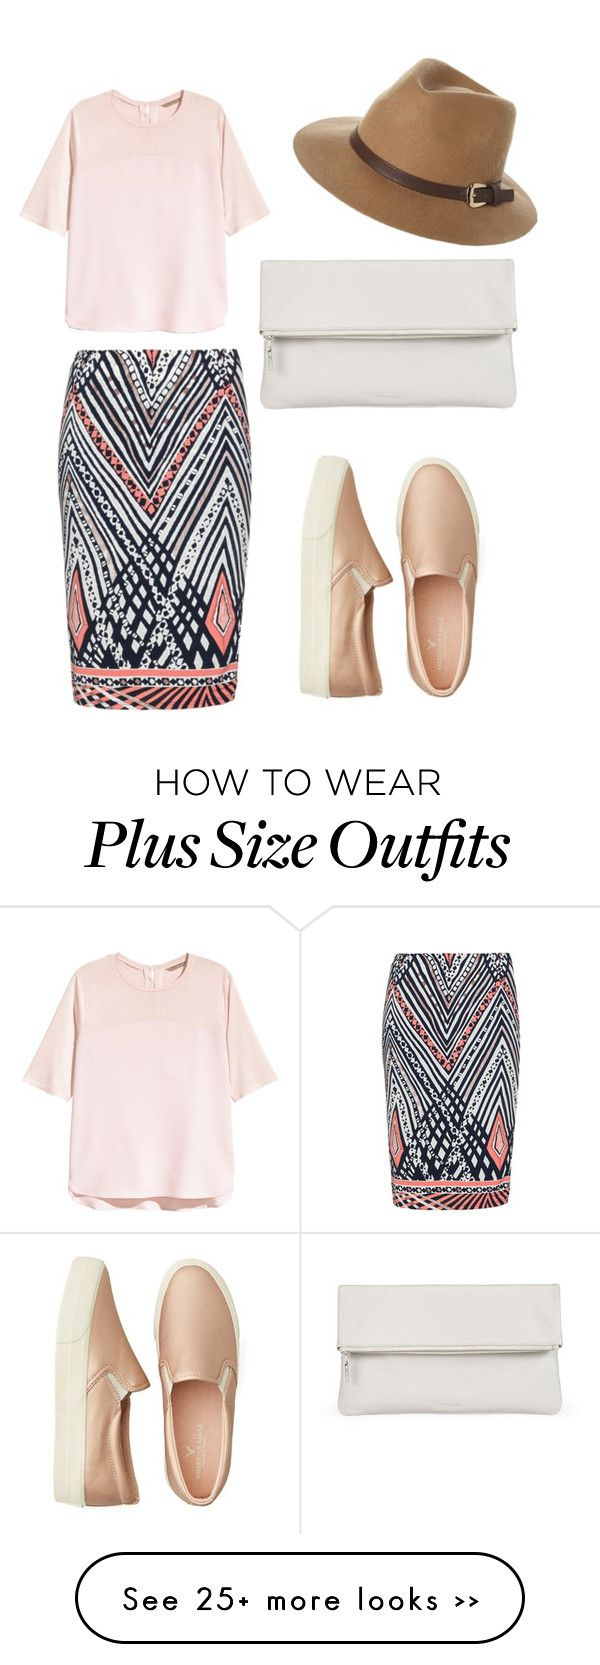 """sneakers and flats"" by devonkathleenallen on Polyvore featuring American Eagle Outfitters, Anna Scholz, H&M, Rusty and Whistles"